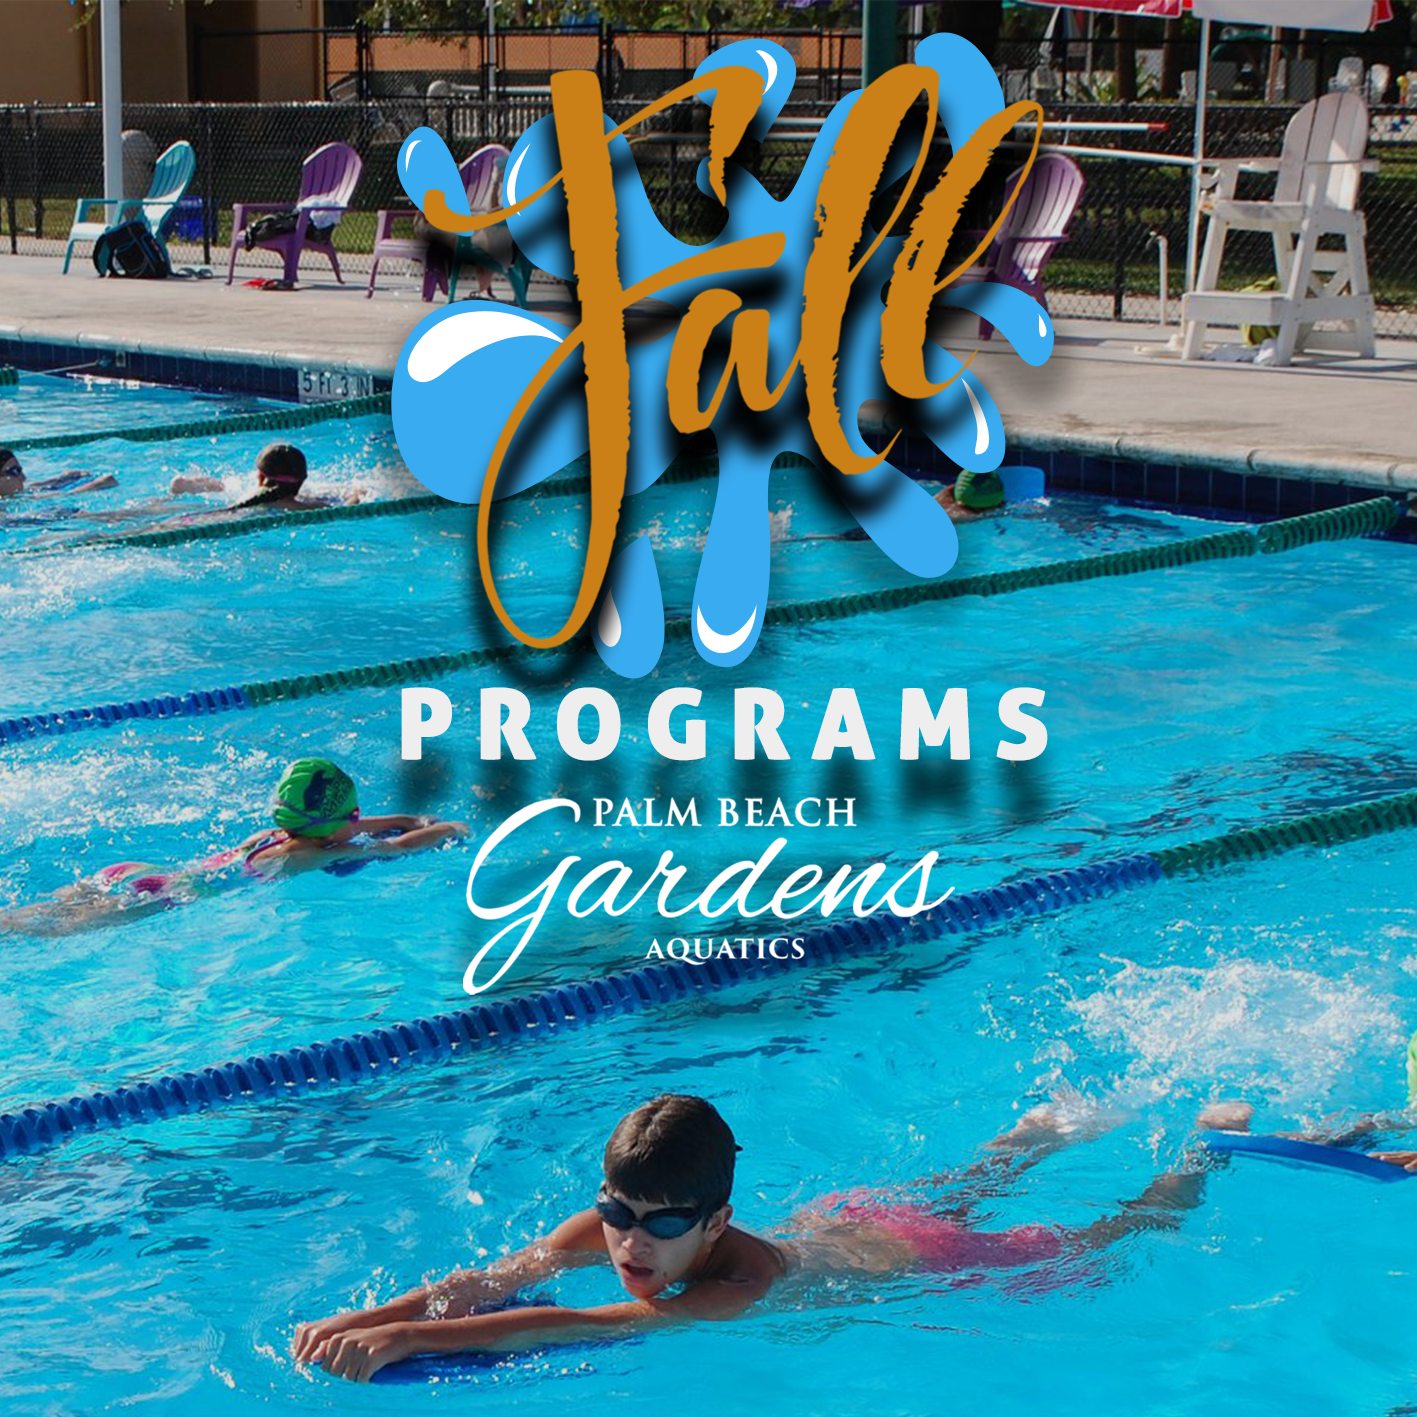 Fall Programs for Palm Beach Gardens Aquatics